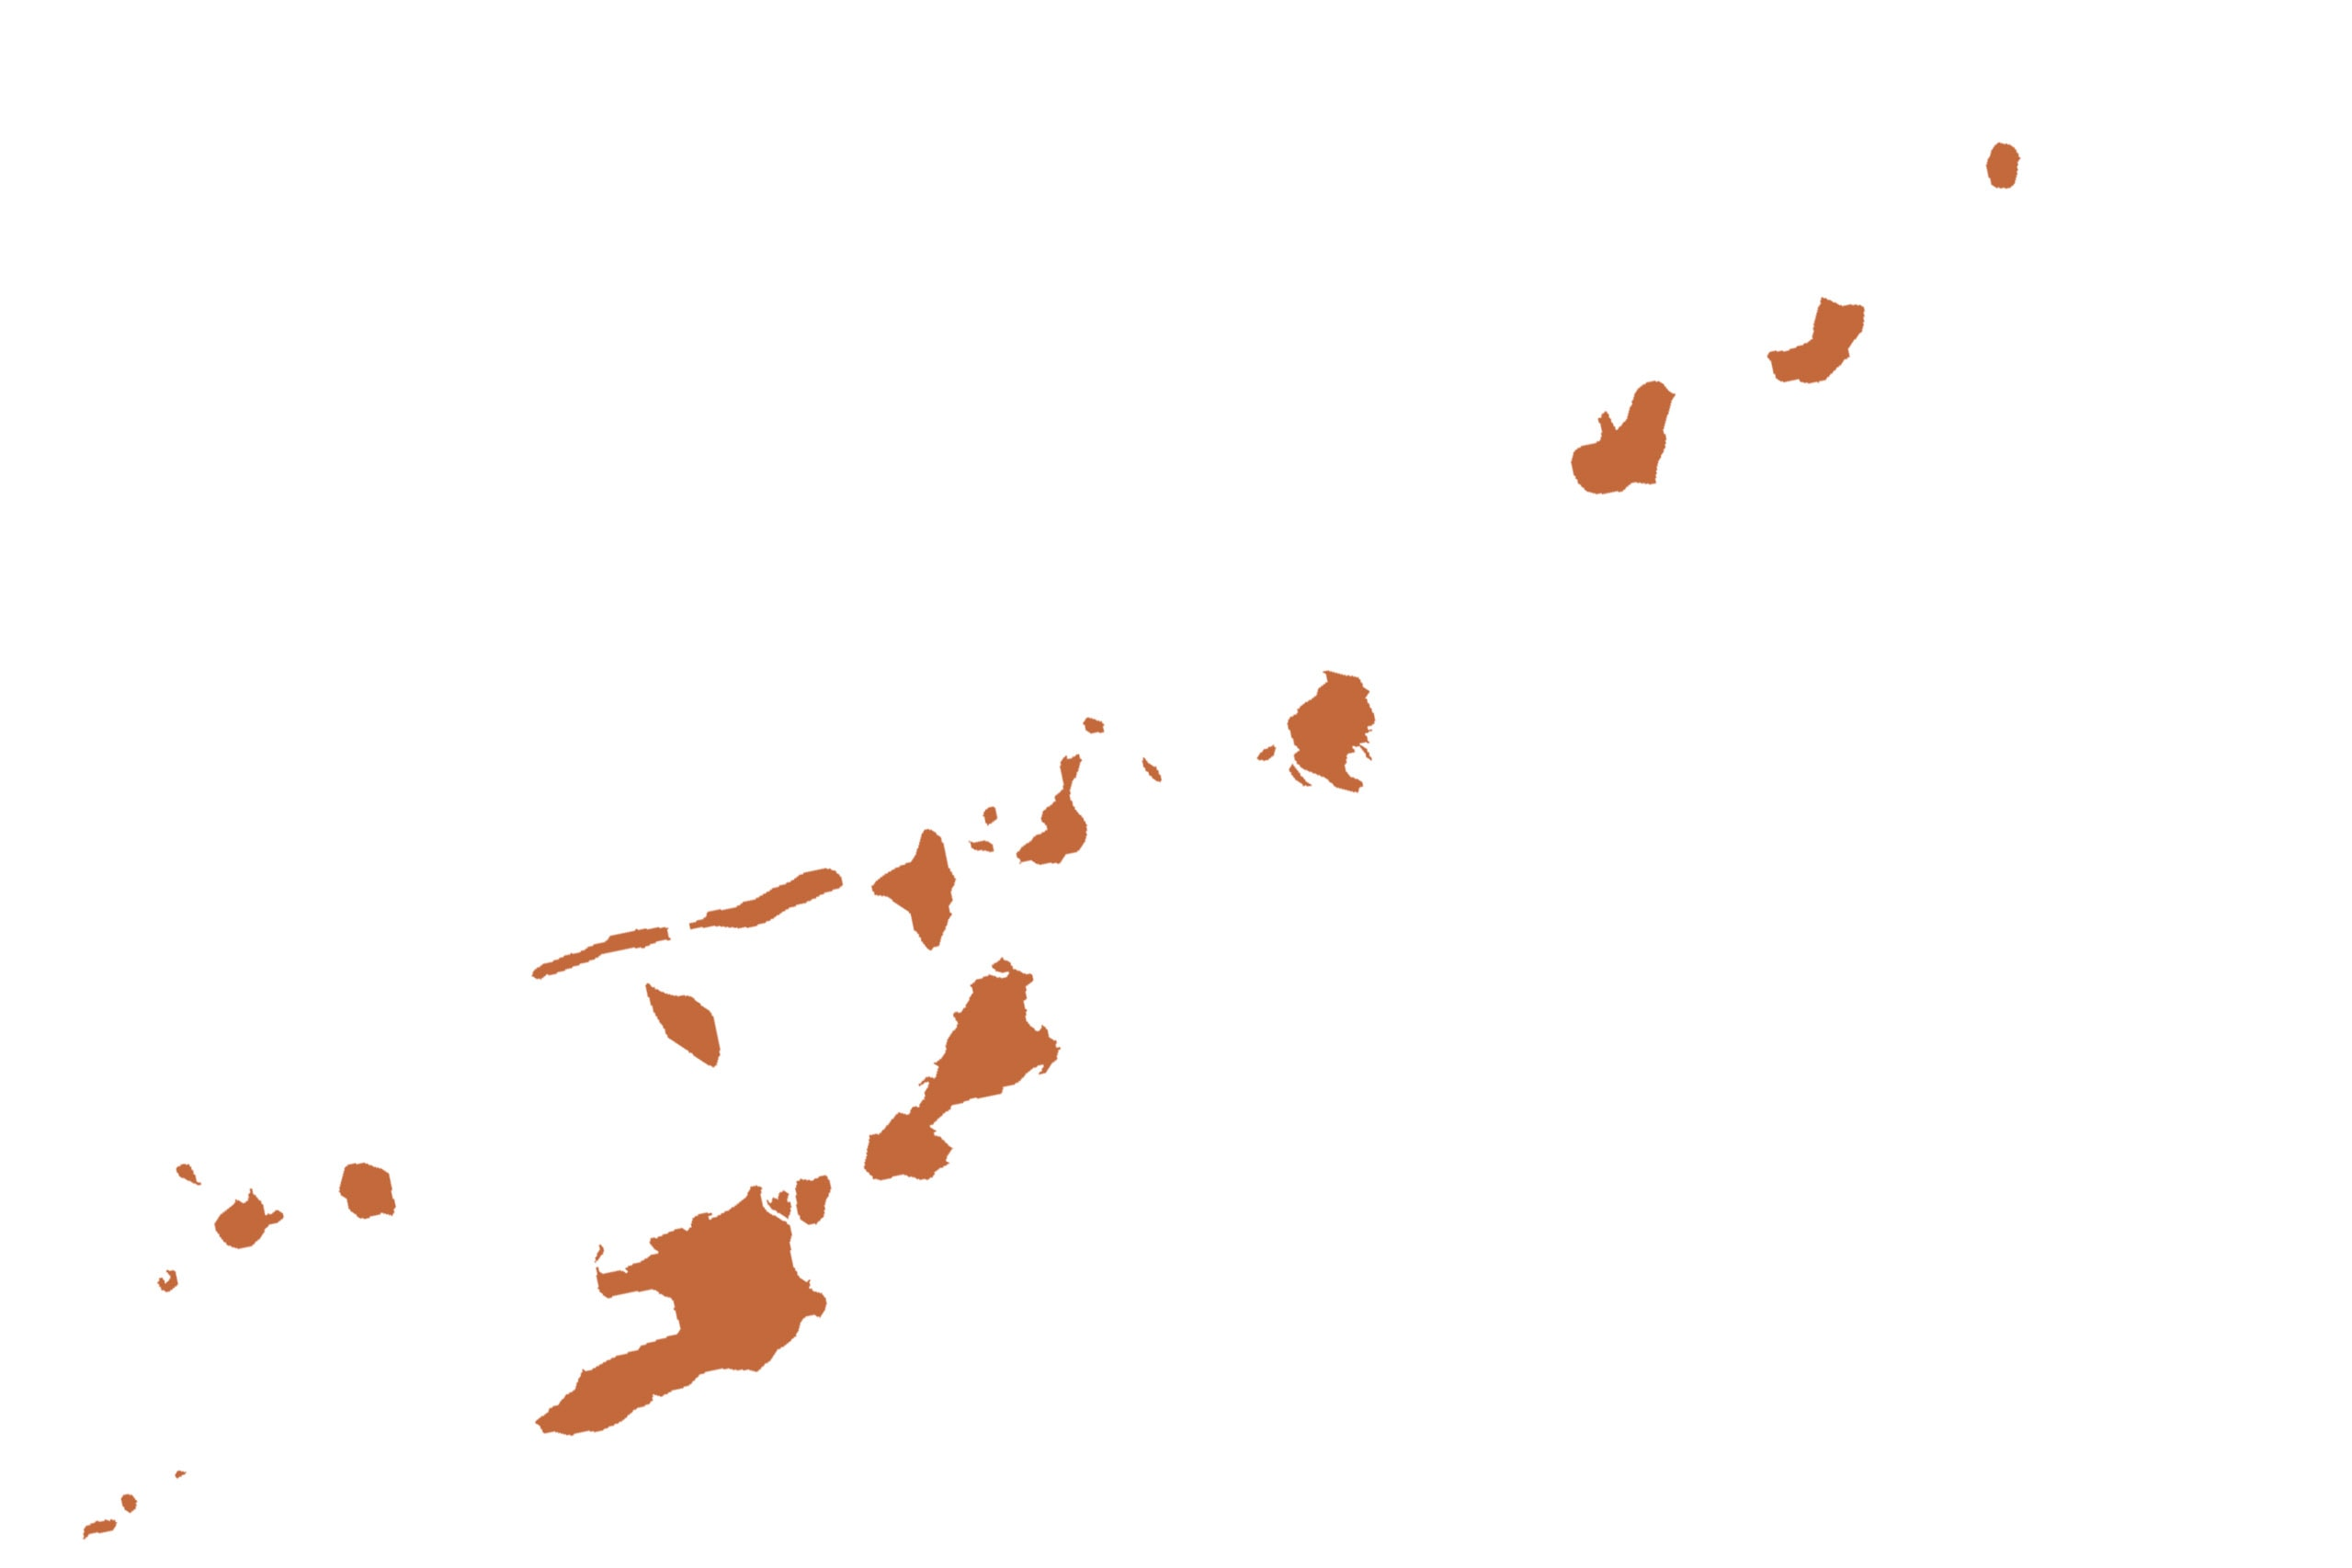 Vanuatu map in orange from list of missing countries for 1 City Earth Portrait Photography Project aka NYChildren by Danny Goldfield.